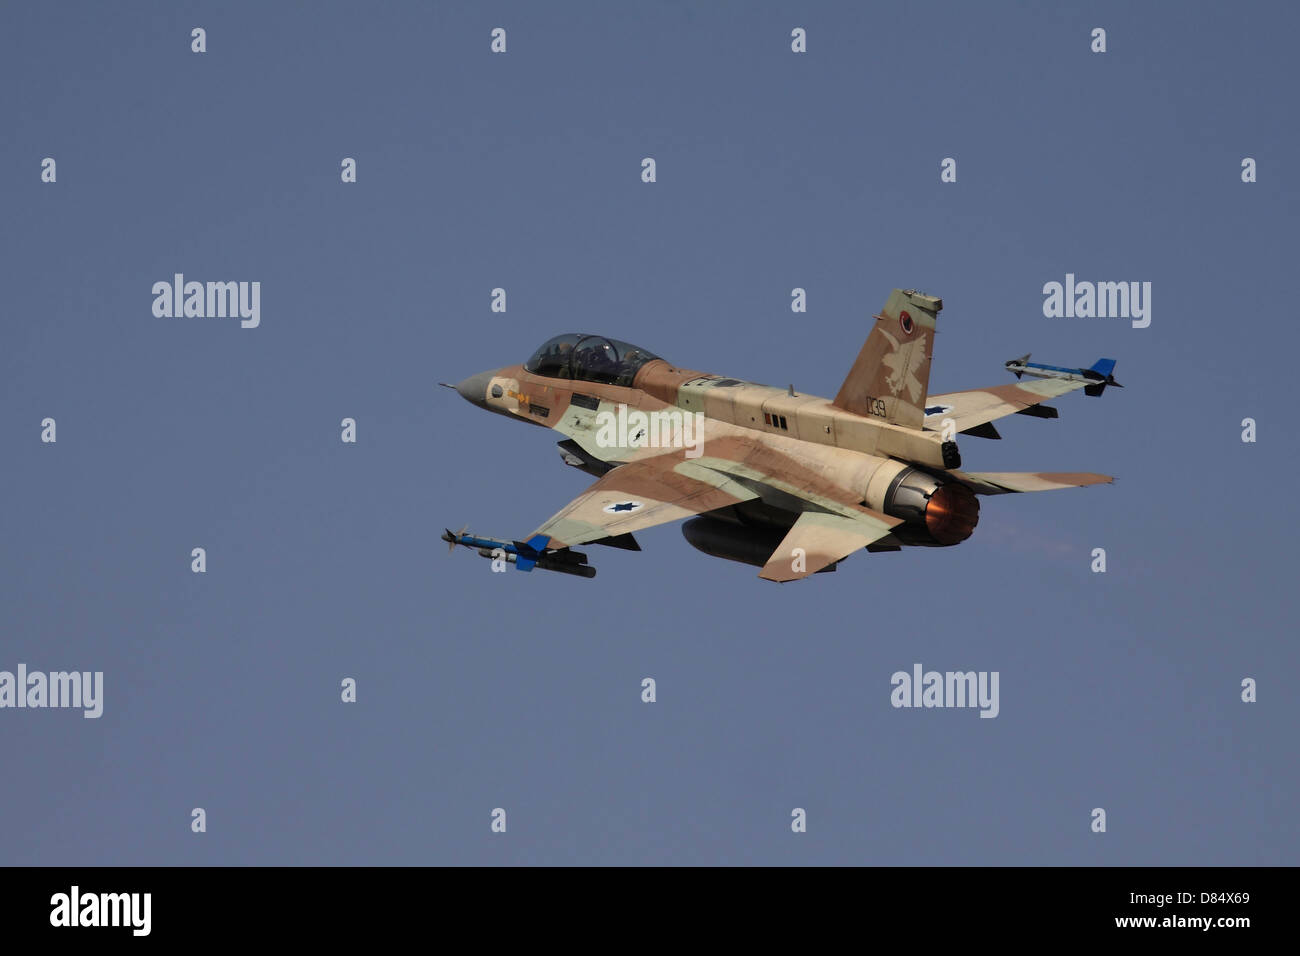 An F-16D Barak of the Israeli Air Force flying over Ramat David Air Force Base in Israel. - Stock Image